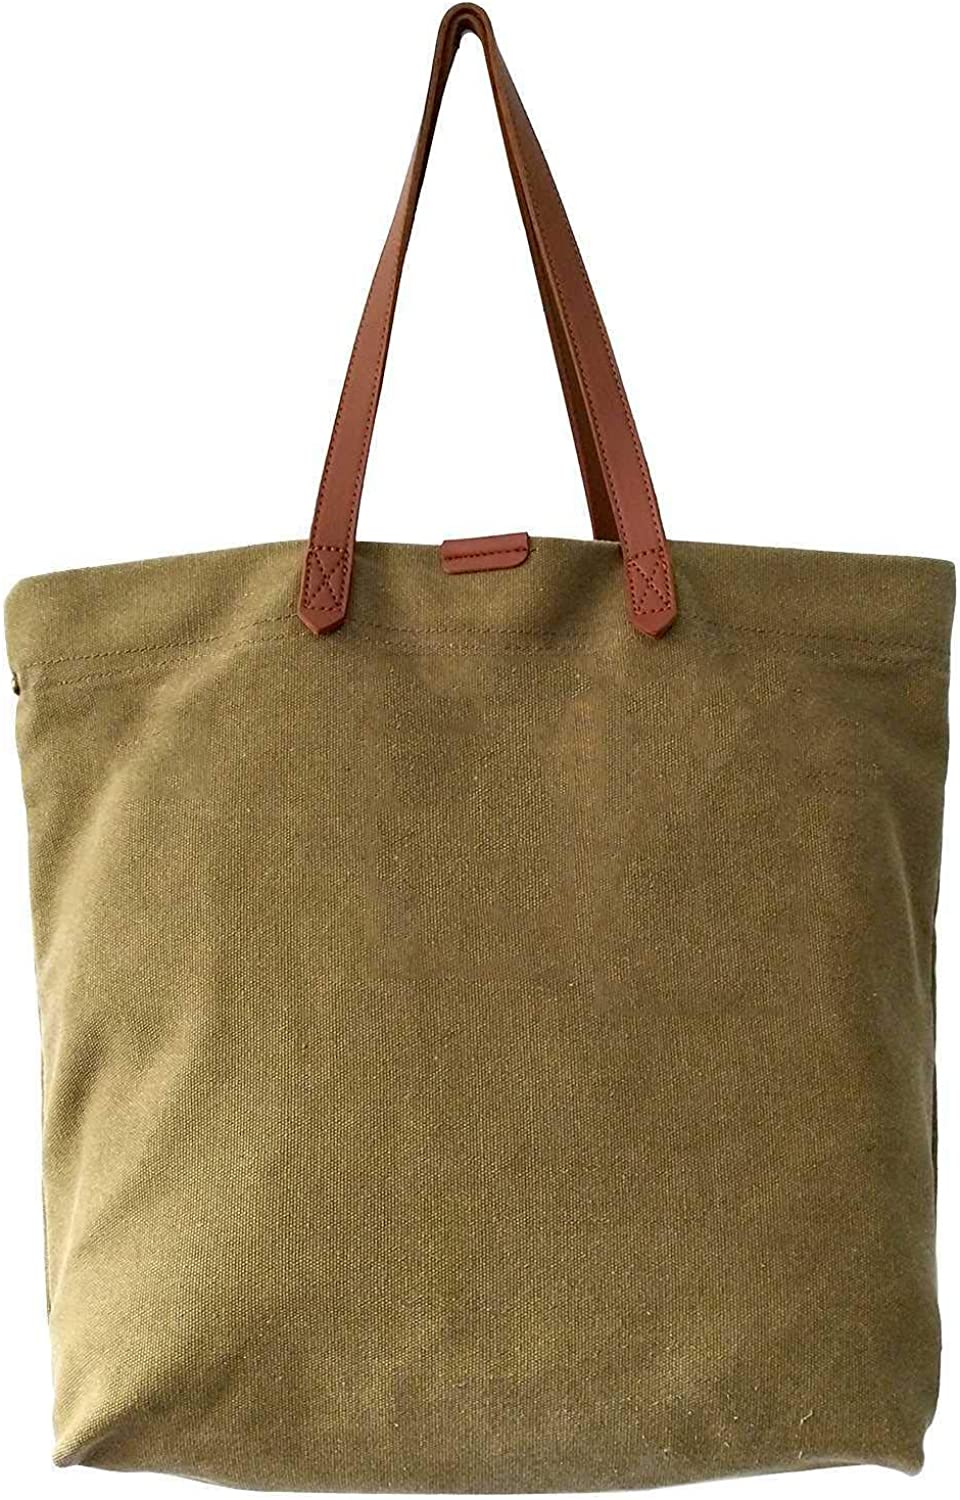 WORTHTRYIT Multi Purpose Canvas Bags Personalized Monogram Printed Canvas Market Tote Bag